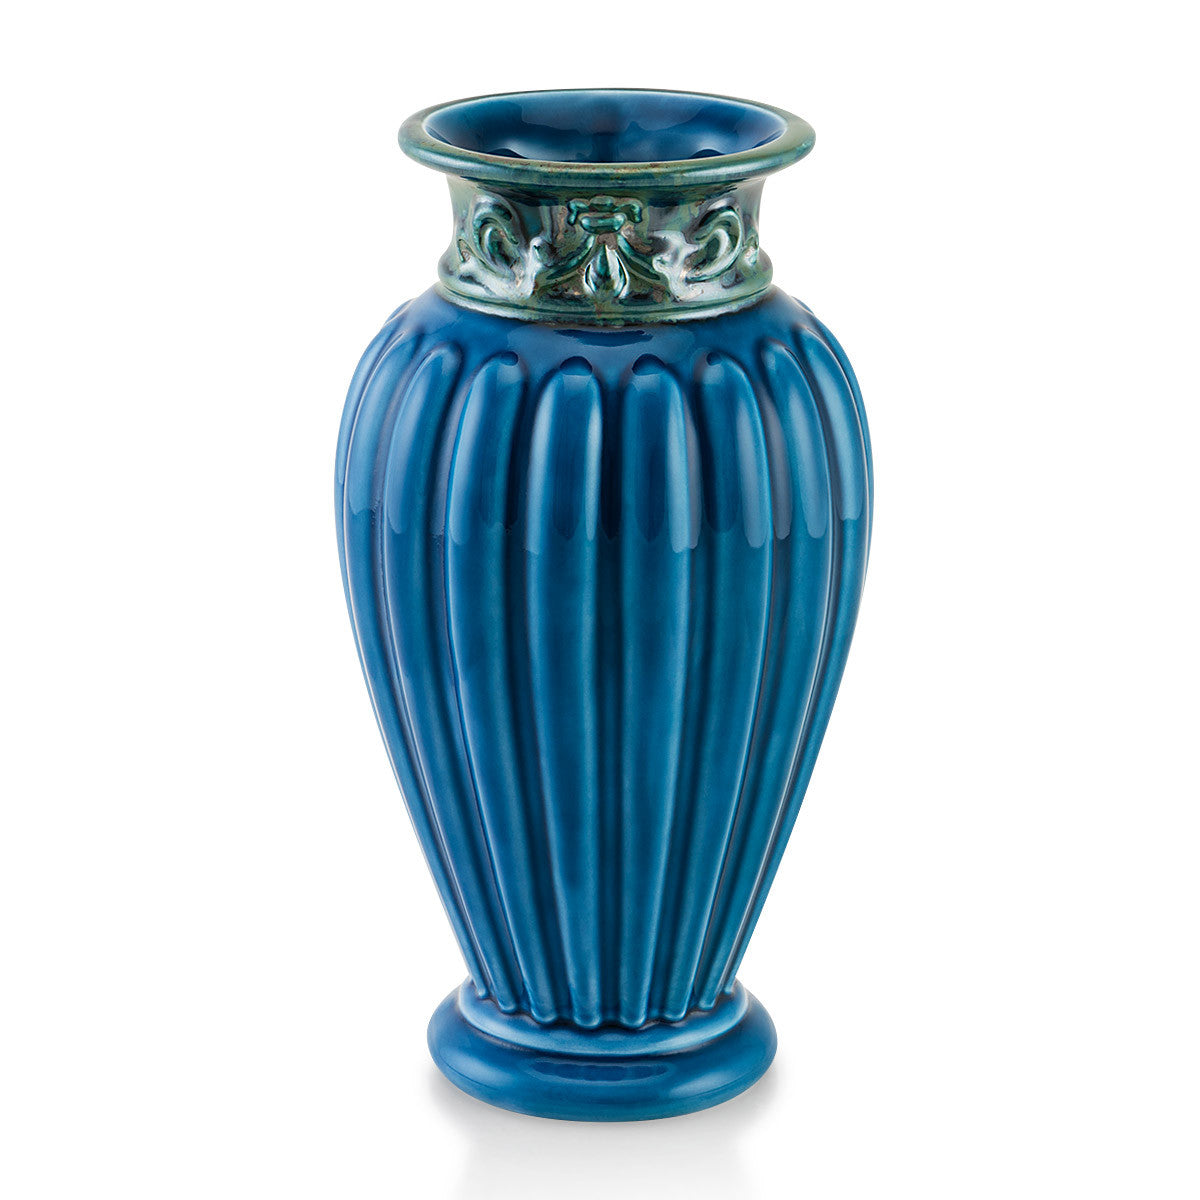 Ceramic coloured ribbed vase, blue color